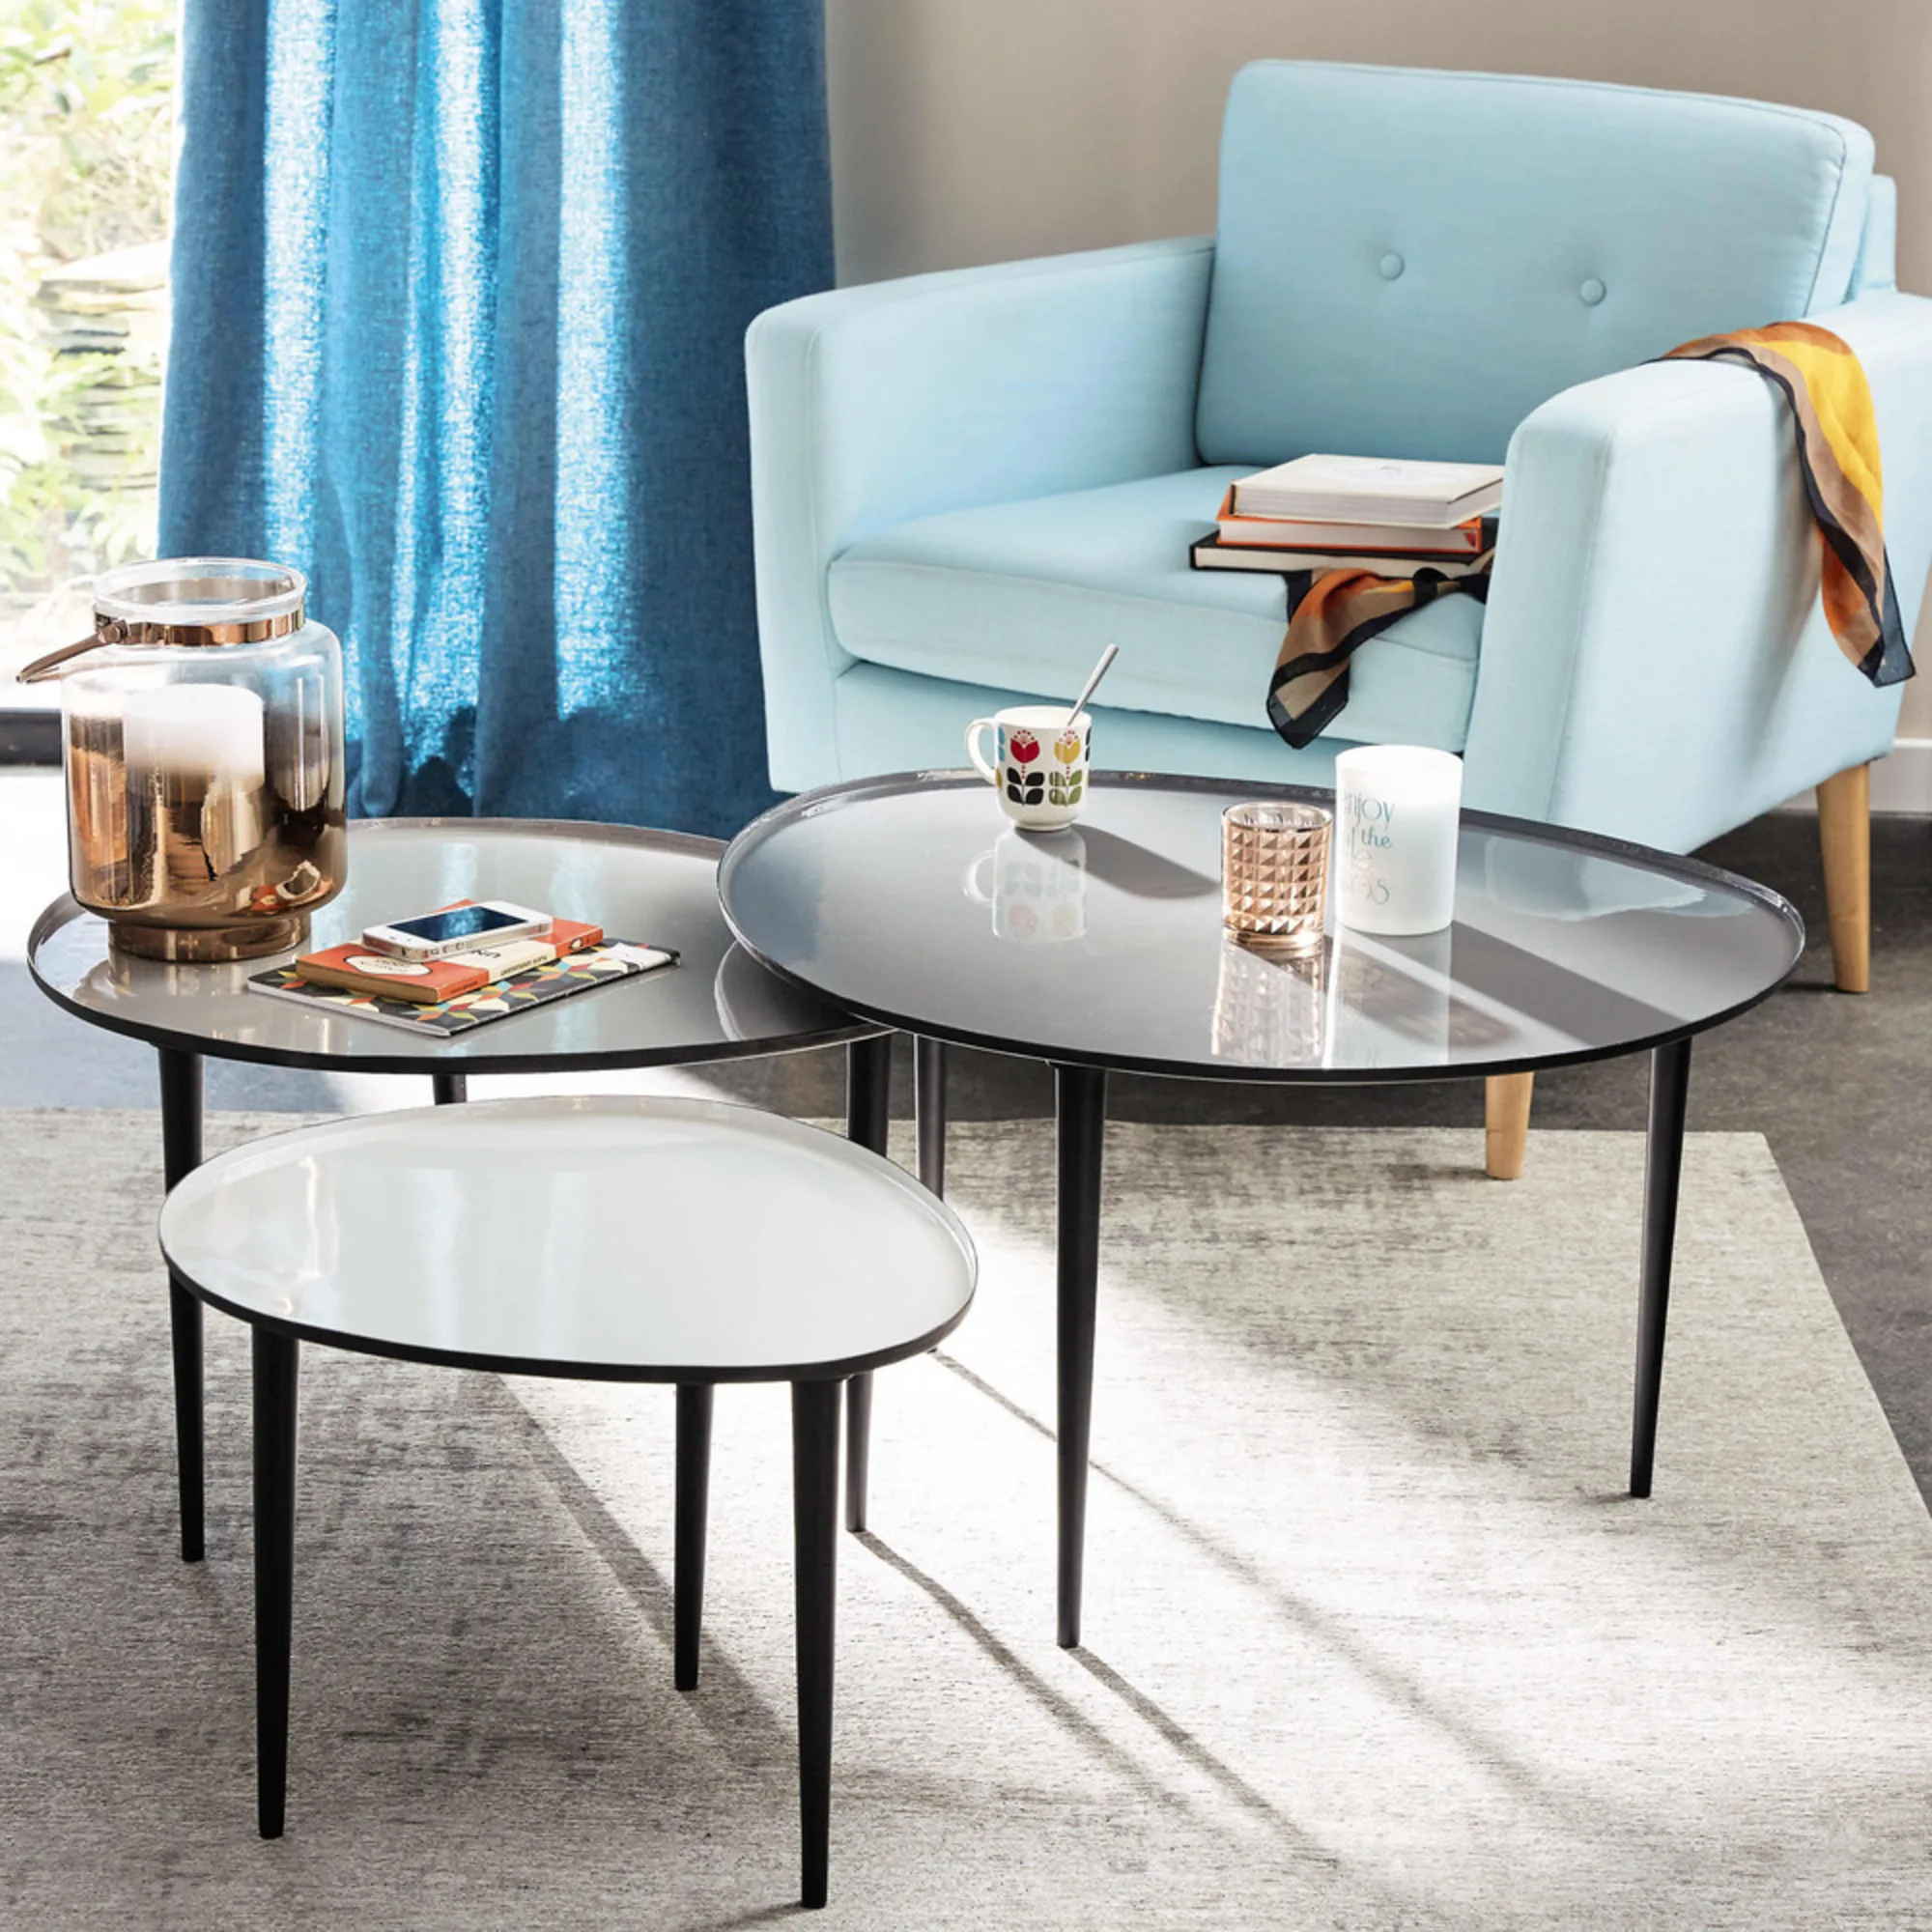 Our 3D HUB gives you first-hand access to these new end table 3D models from Maison Du Monde to use in your 3D projects and impress your clients #3dforum #3dinterior #3dvizialation #MaisonDuMonde  #3dcad #3dendtables